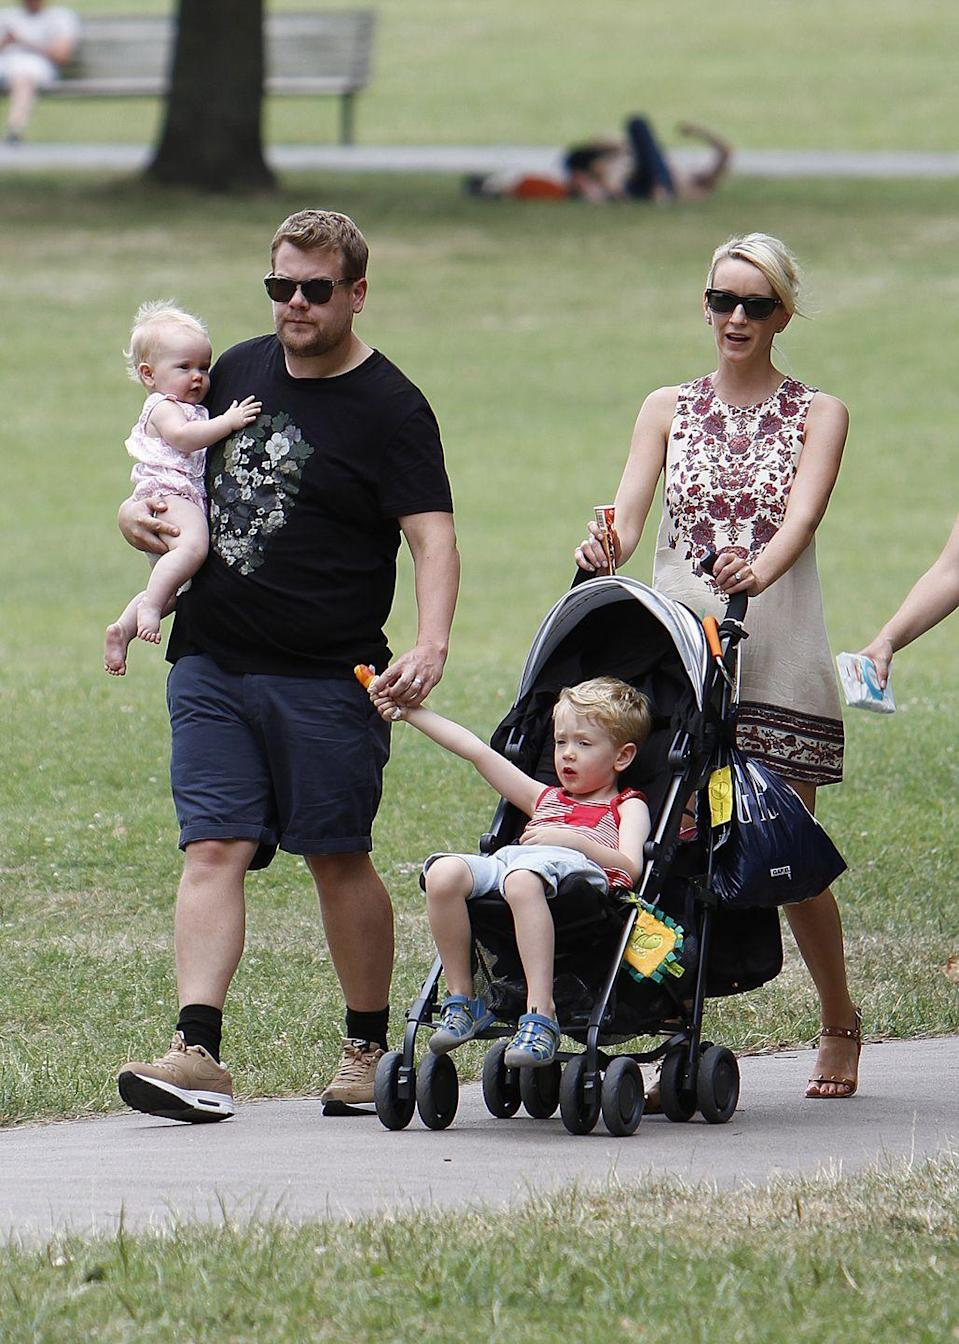 """<p><strong>Children</strong>: Max Corden (9), Carey Corden (5), Charlotte Corden (2)</p><p>Our favorite carpool karaoke and <a href=""""https://www.oprahmag.com/entertainment/tv-movies/a28084061/michelle-obama-james-corden-dodgeball-late-late-show/"""" rel=""""nofollow noopener"""" target=""""_blank"""" data-ylk=""""slk:The Late Late Show host"""" class=""""link rapid-noclick-resp""""><em>The Late Late Show</em> host</a> regularly hangs with famous celebrities, but still makes time for his three young children and <a href=""""https://www.oprahmag.com/entertainment/tv-movies/a30262866/james-corden-wife-julia-carey/"""" rel=""""nofollow noopener"""" target=""""_blank"""" data-ylk=""""slk:his wife Julia Carey, who he calls &quot;the most beautiful woman in the world.&quot;"""" class=""""link rapid-noclick-resp"""">his wife Julia Carey, who he calls """"the most beautiful woman in the world.""""</a></p>"""